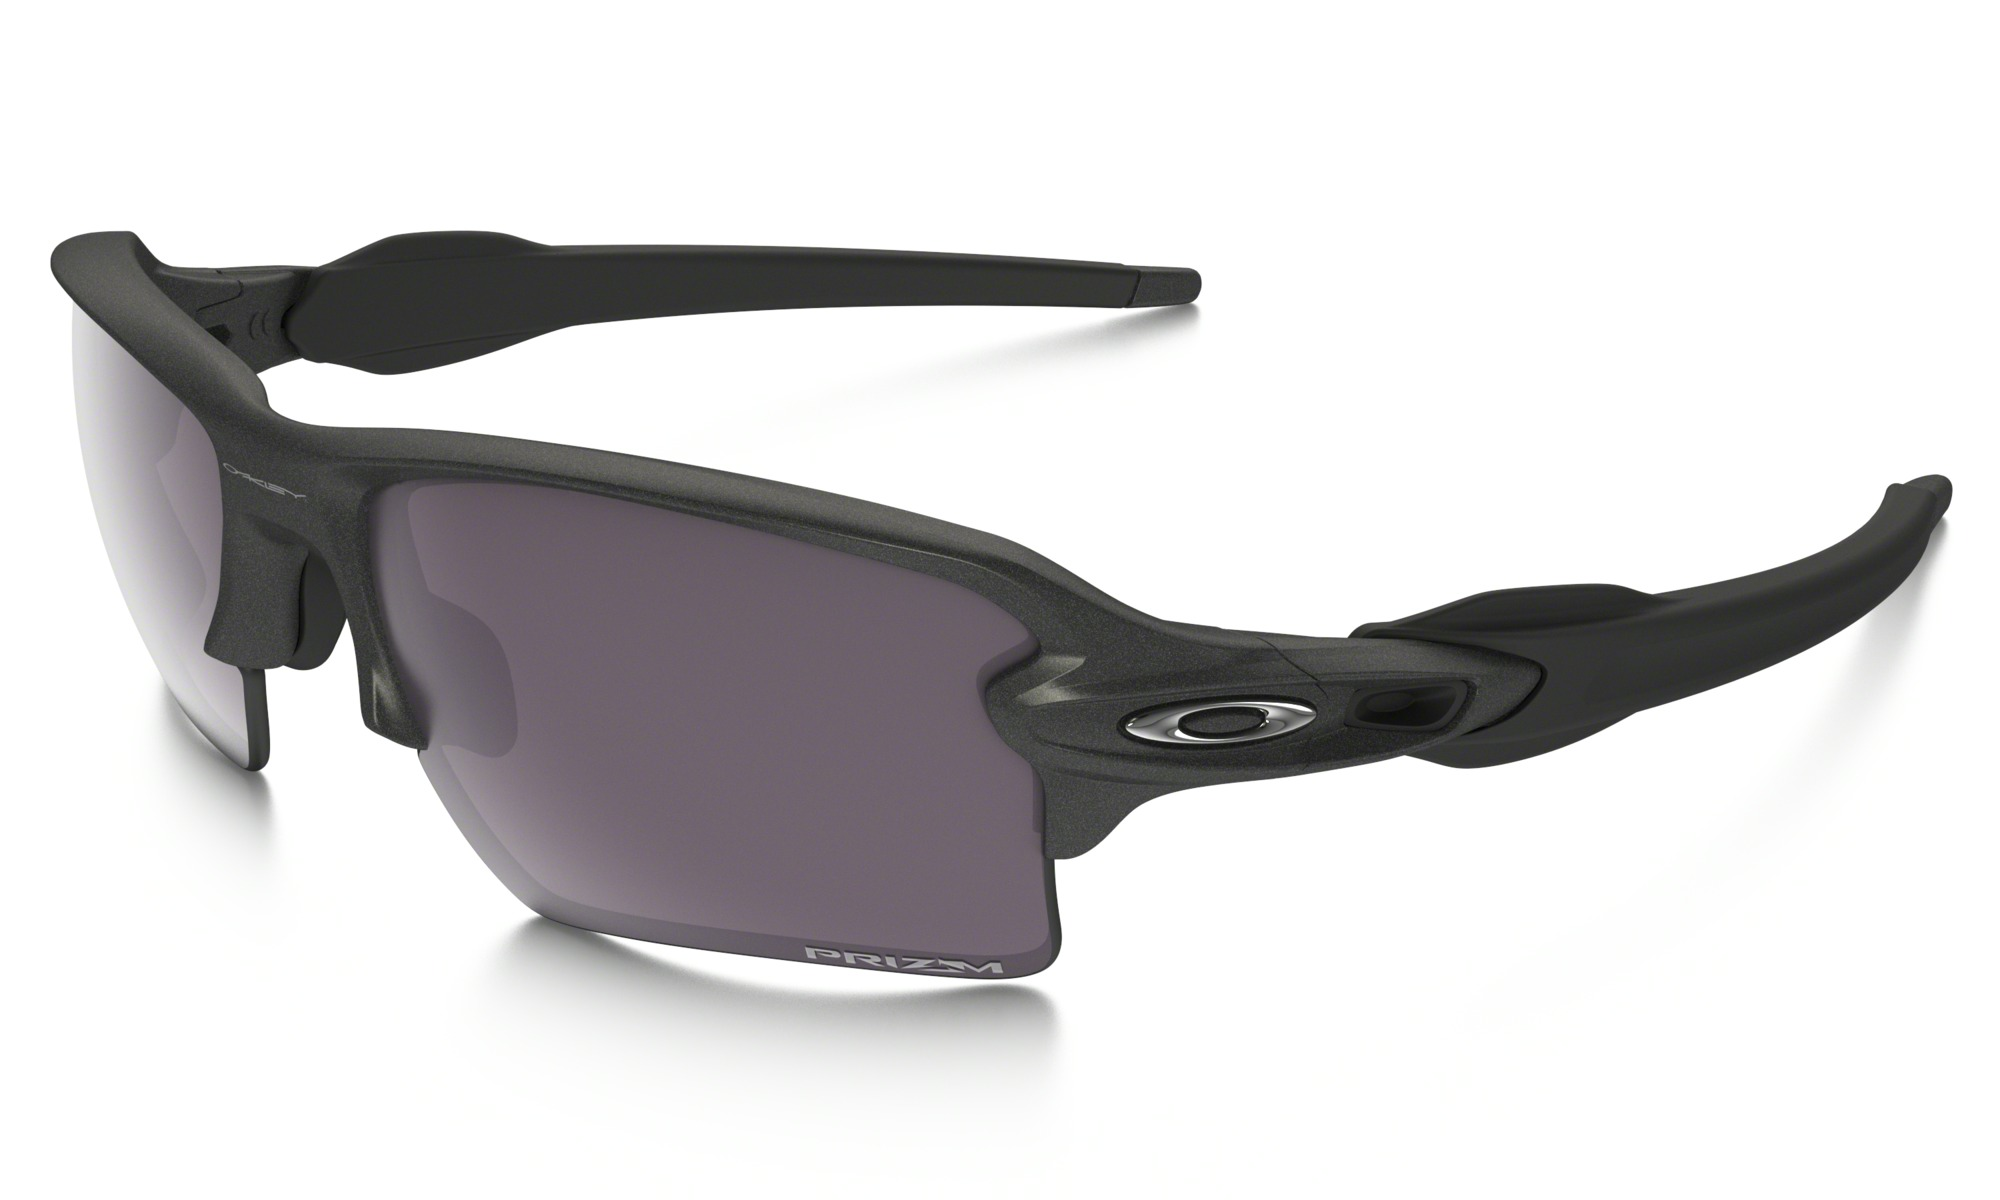 ae88e2ab4e FLAK 2.0 XL STEEL   PRIZM DAILY POLARIZED - Bells Cycling